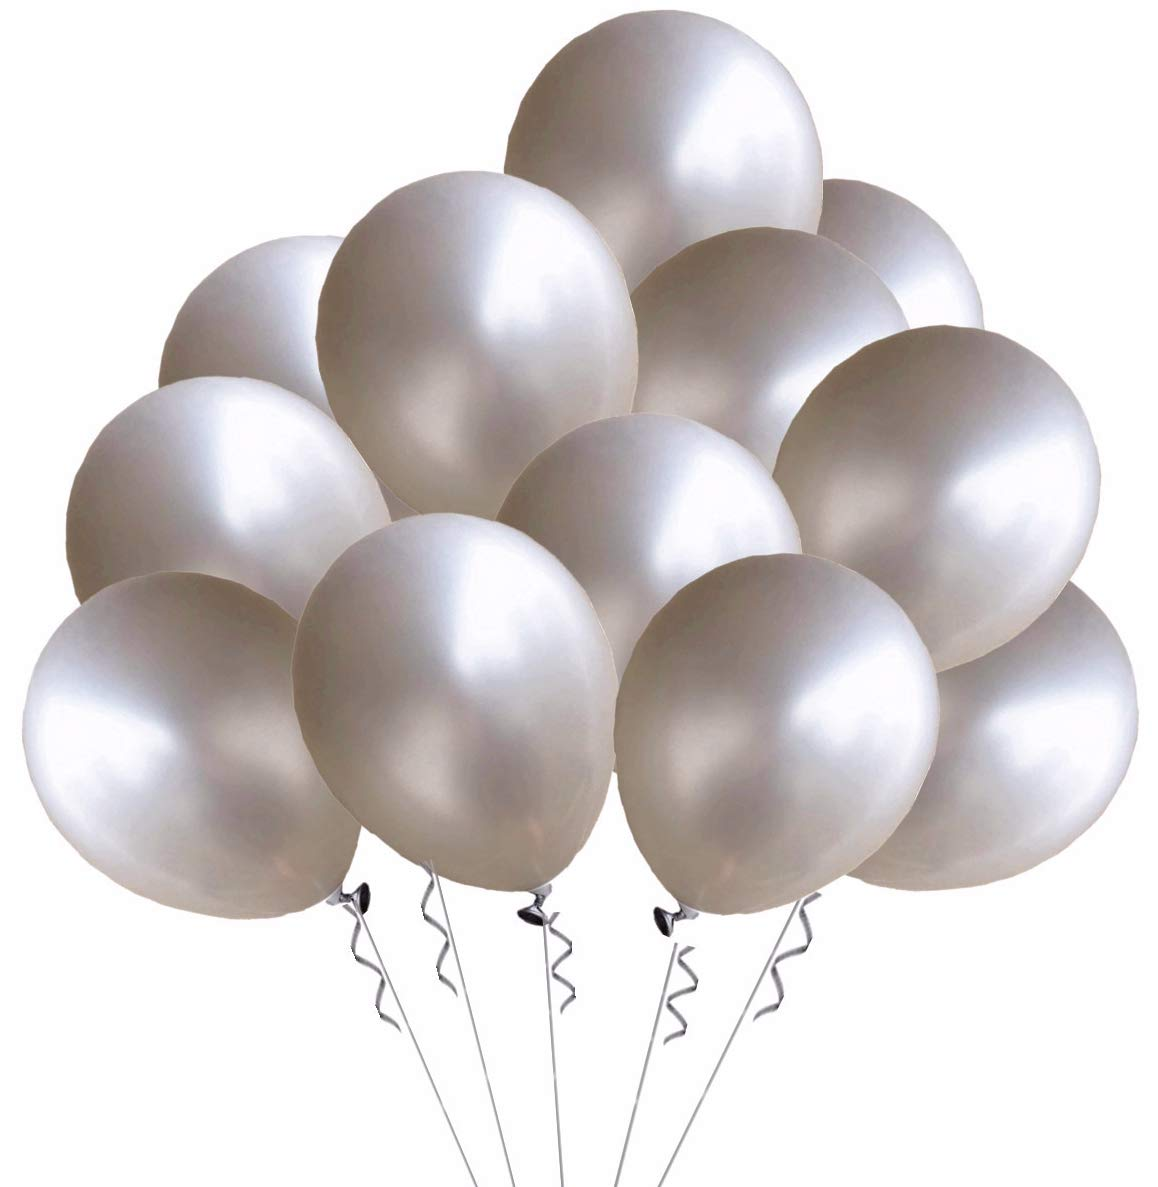 Black Elecrainbow 100 Pack 12 Inch 3.2 g//pc Thicken Round Pearlescent Latex Black Balloons for Party Decorations